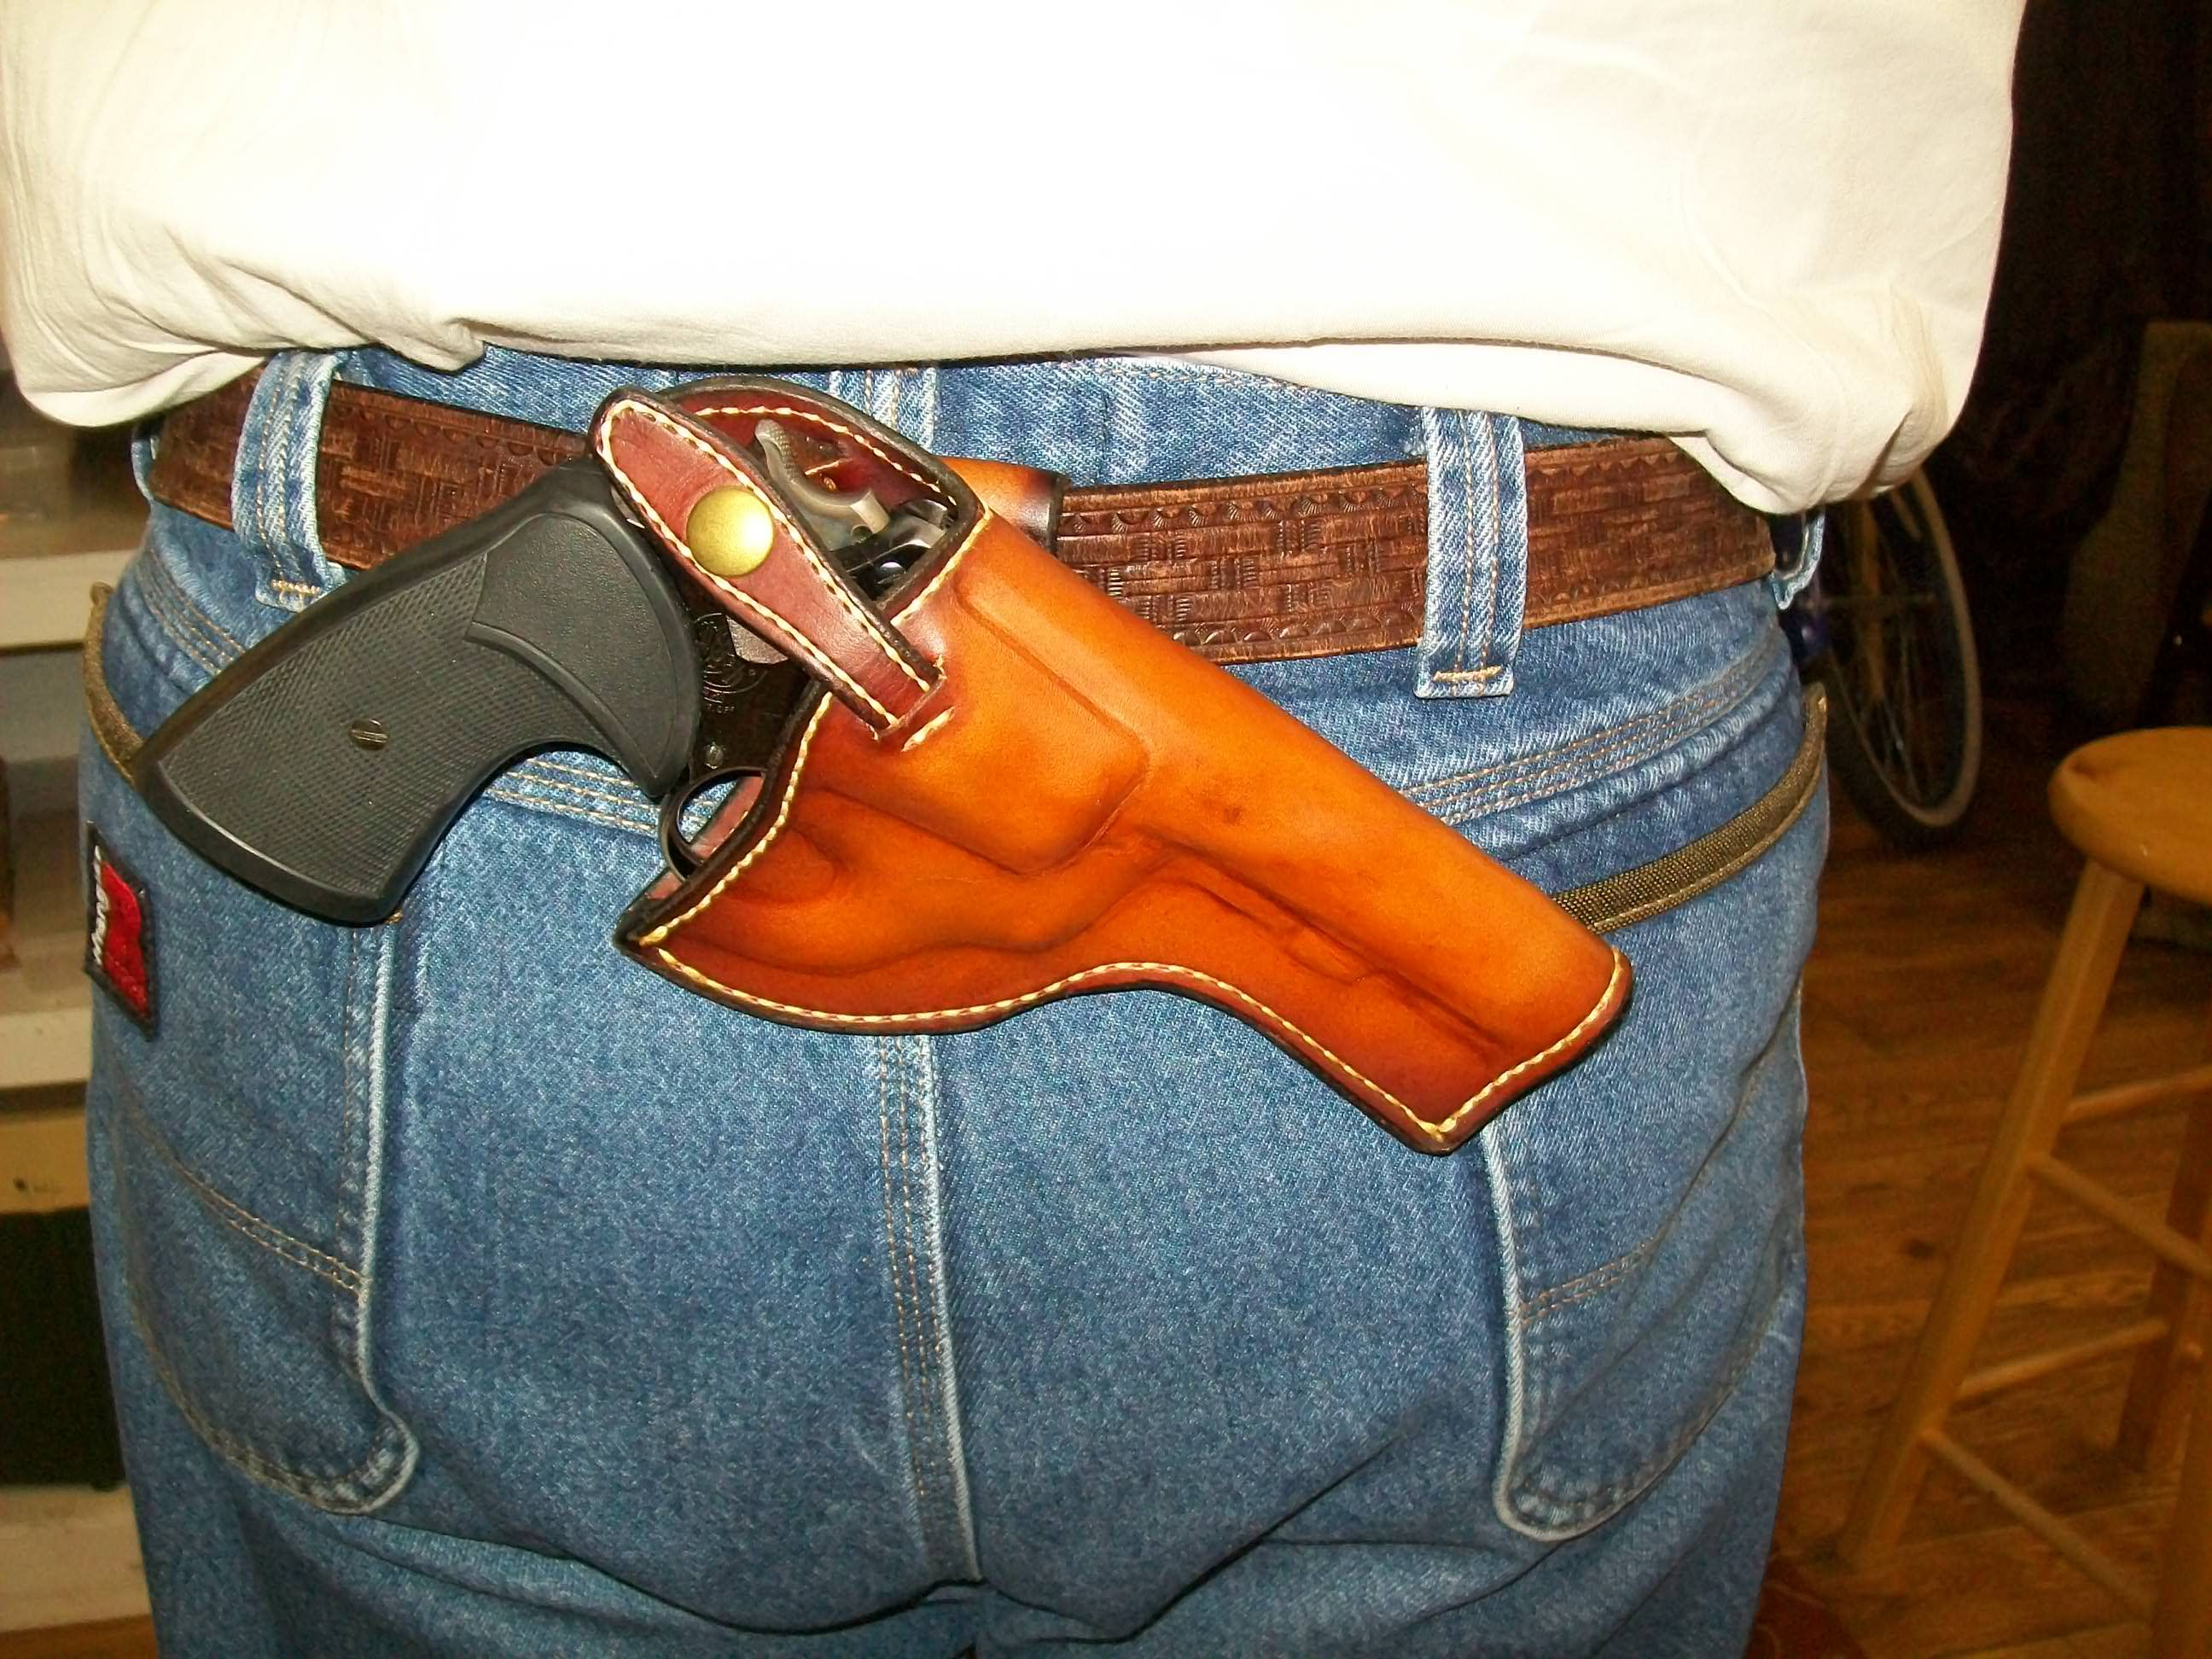 """""""SOB"""" (small of back) holster for a S&W revolver, made at Boulder Creek Saddle Shop, Kettle Falls, WA."""